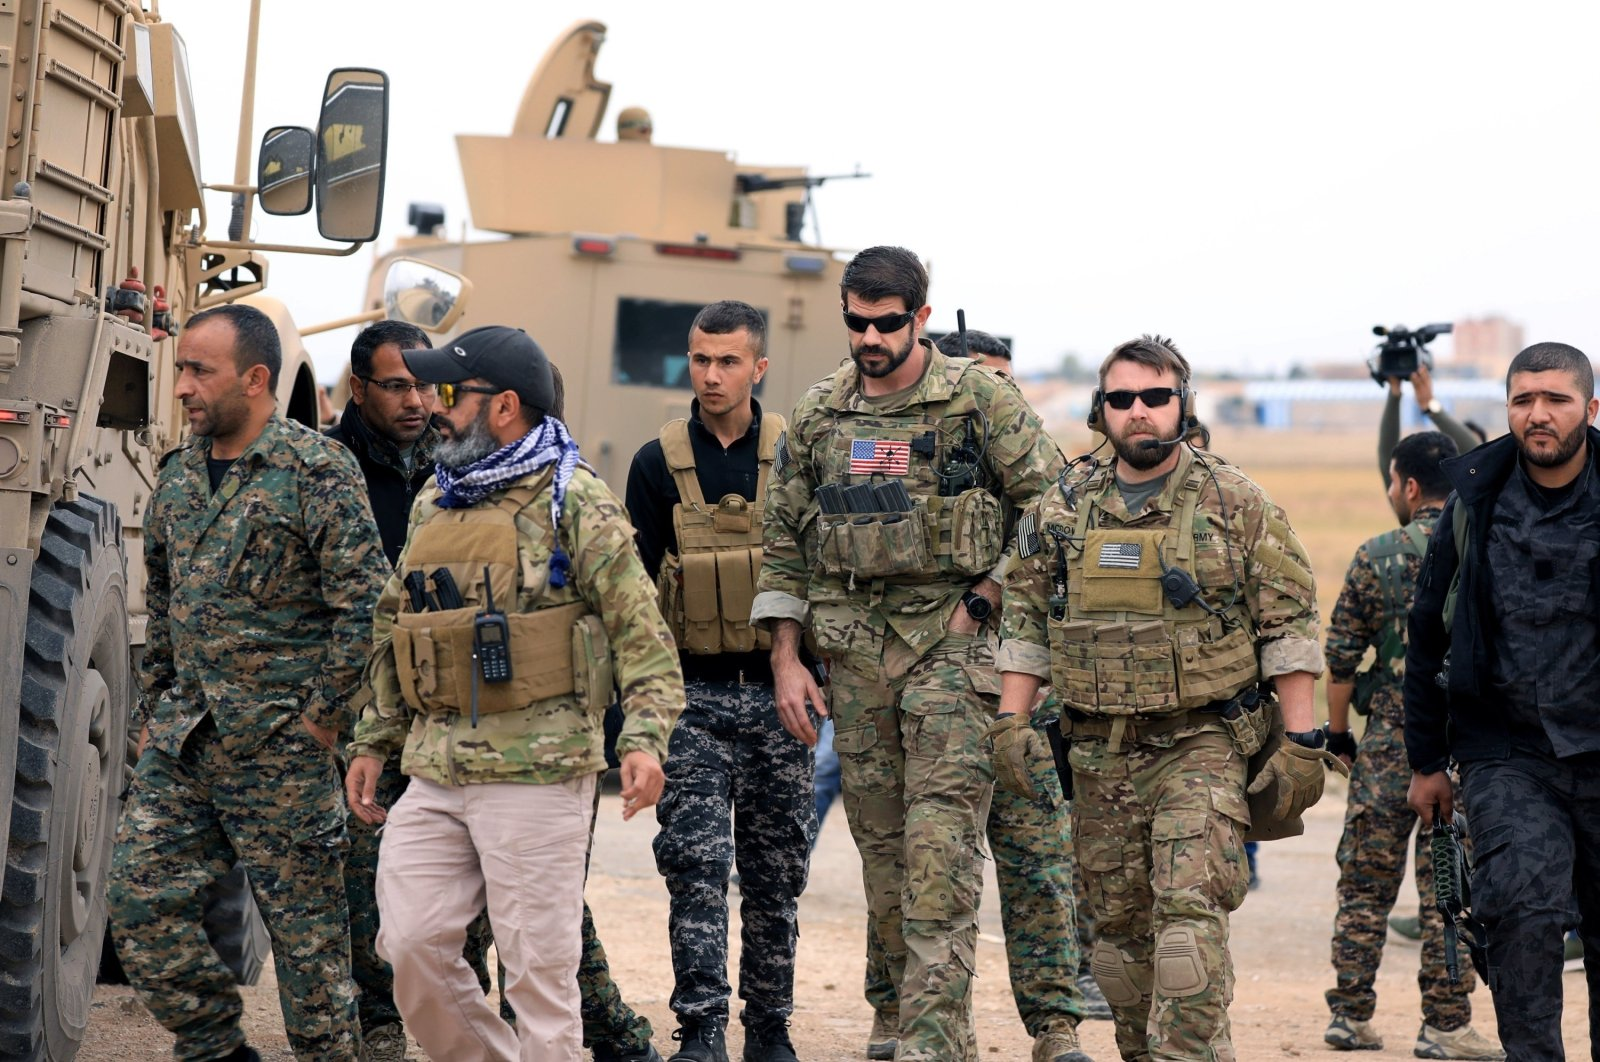 YPG terrorist group makes call for foreigners to join its ranks